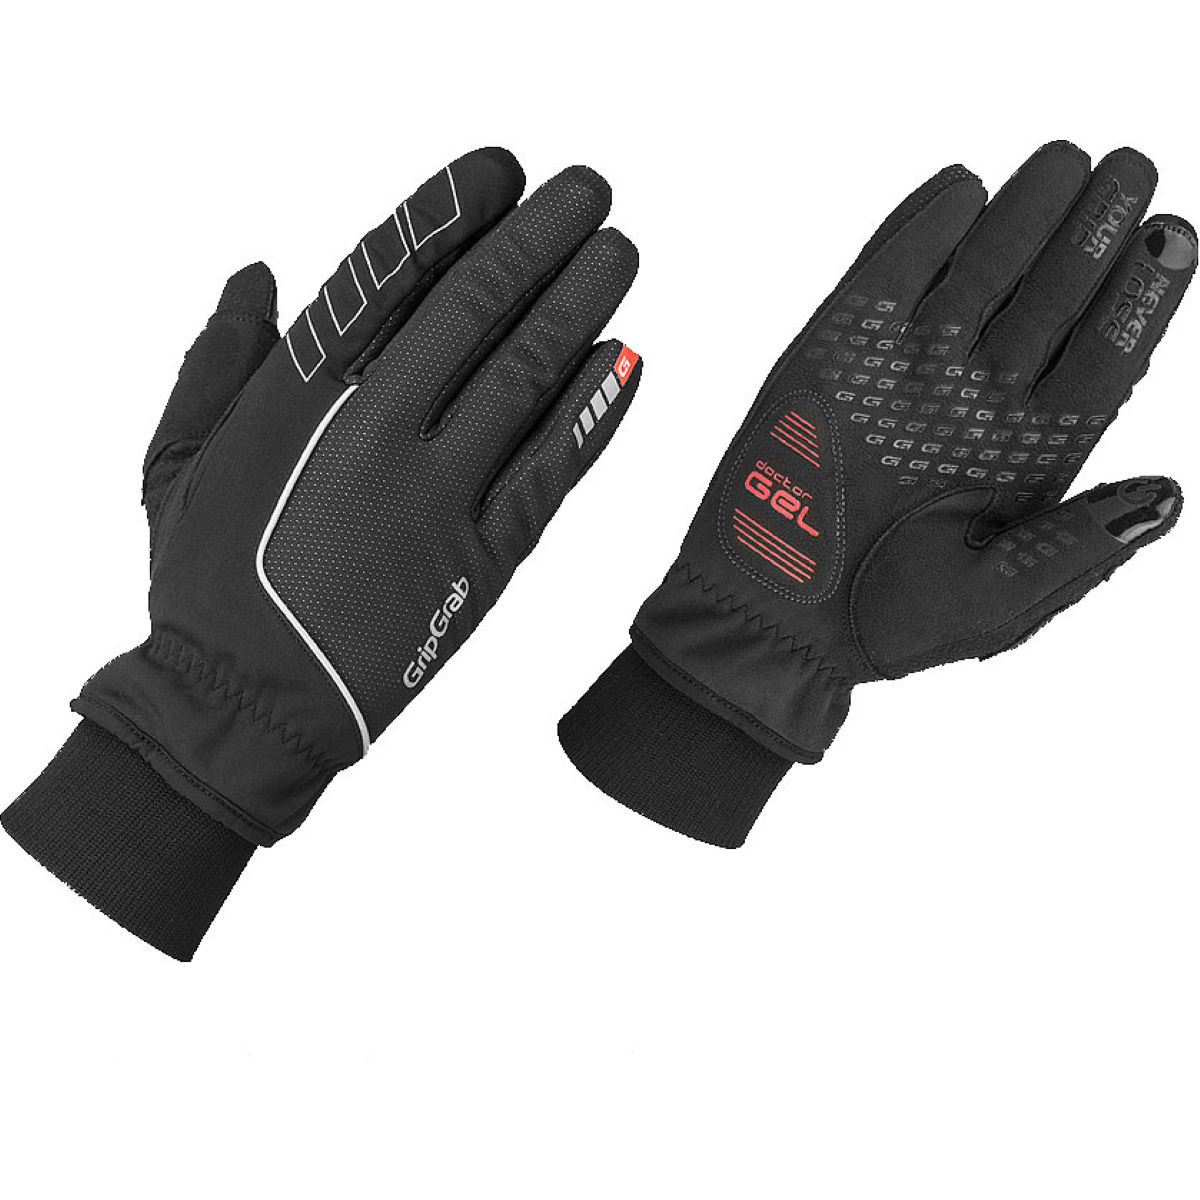 Guantes GripGrab Windster - Guantes